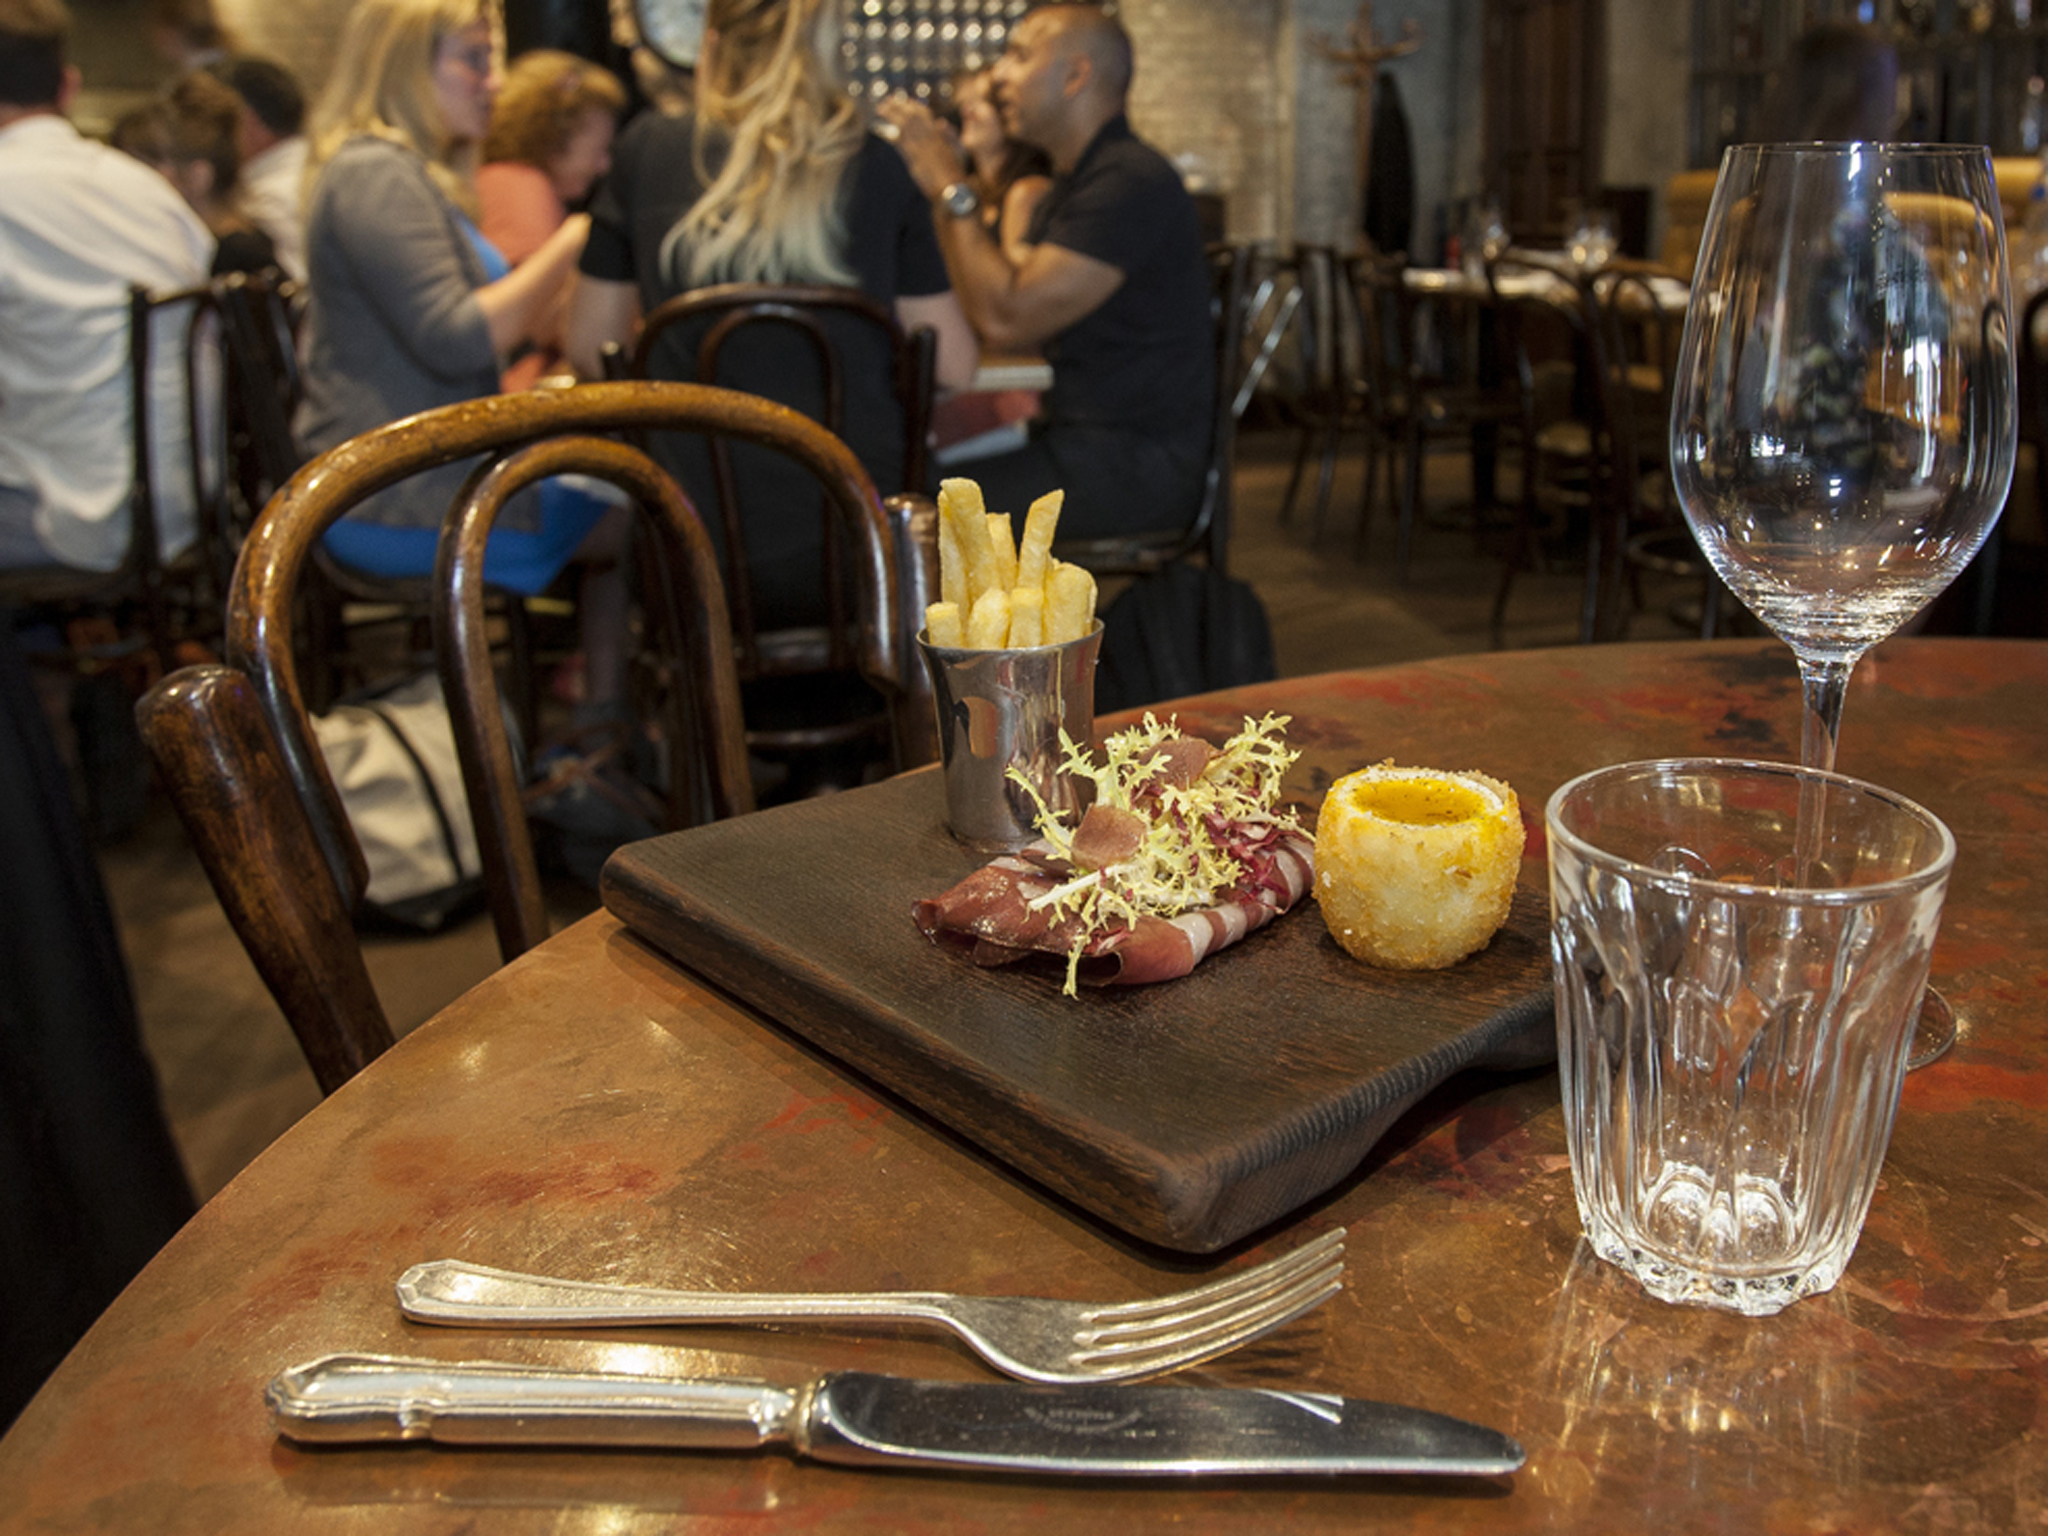 100 best restaurants in London 2015 - Social Eating House